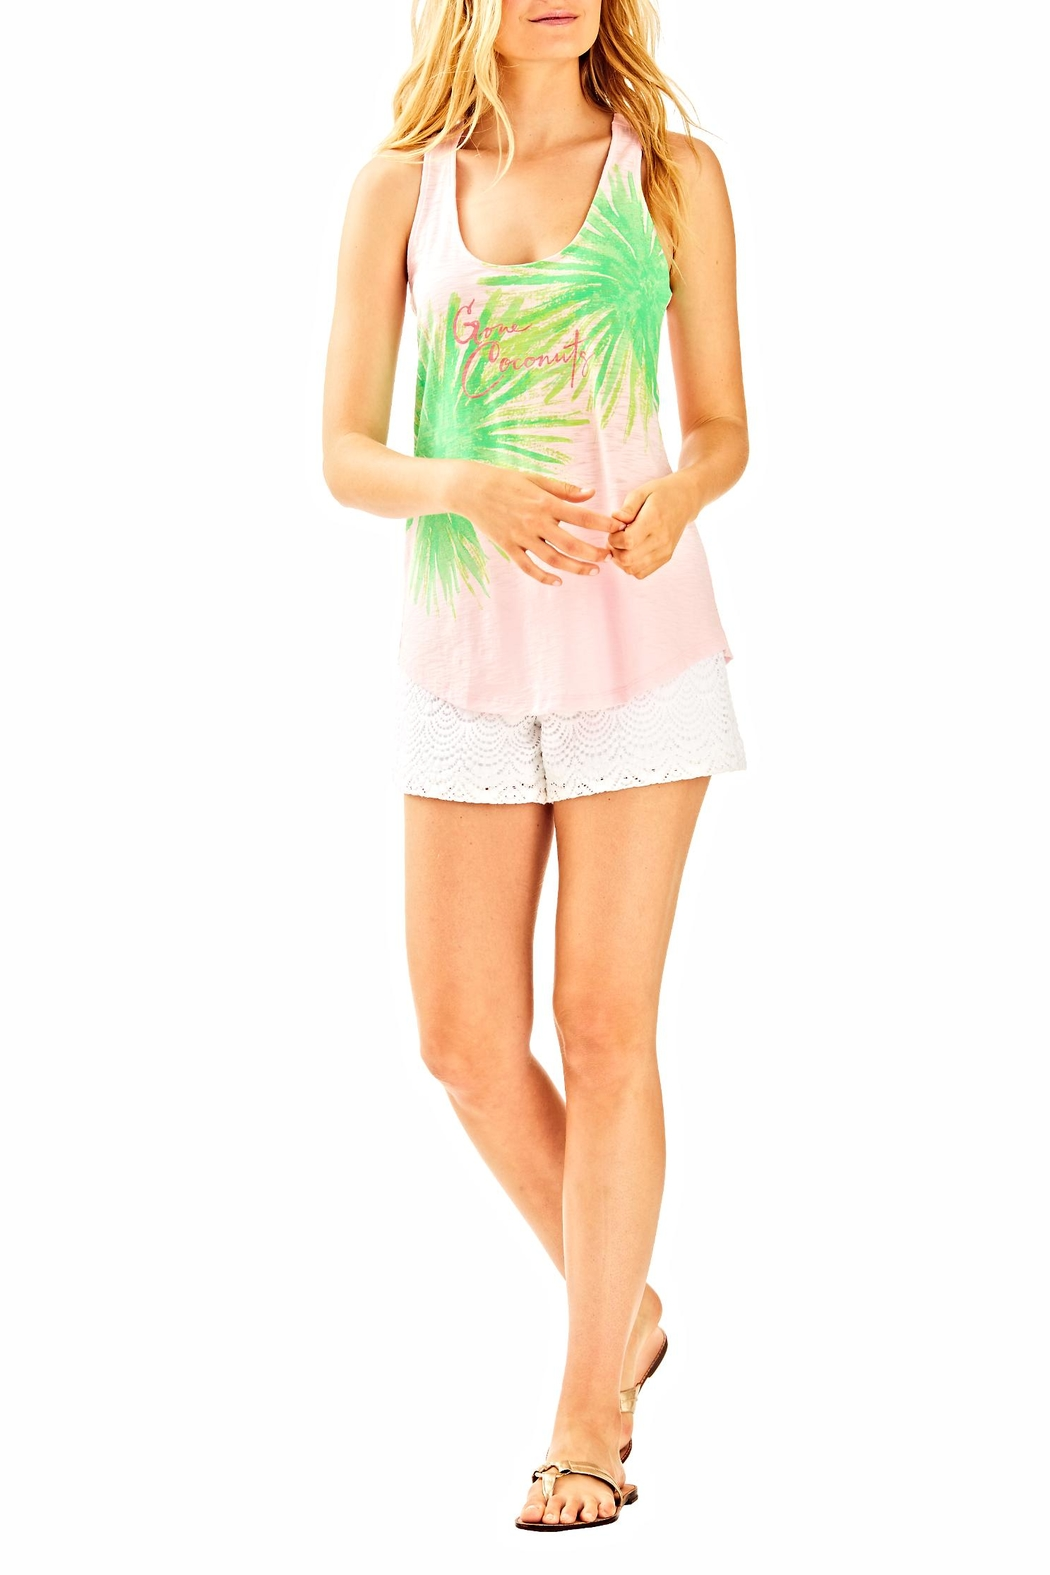 Lilly Pulitzer Cordelia Top - Side Cropped Image